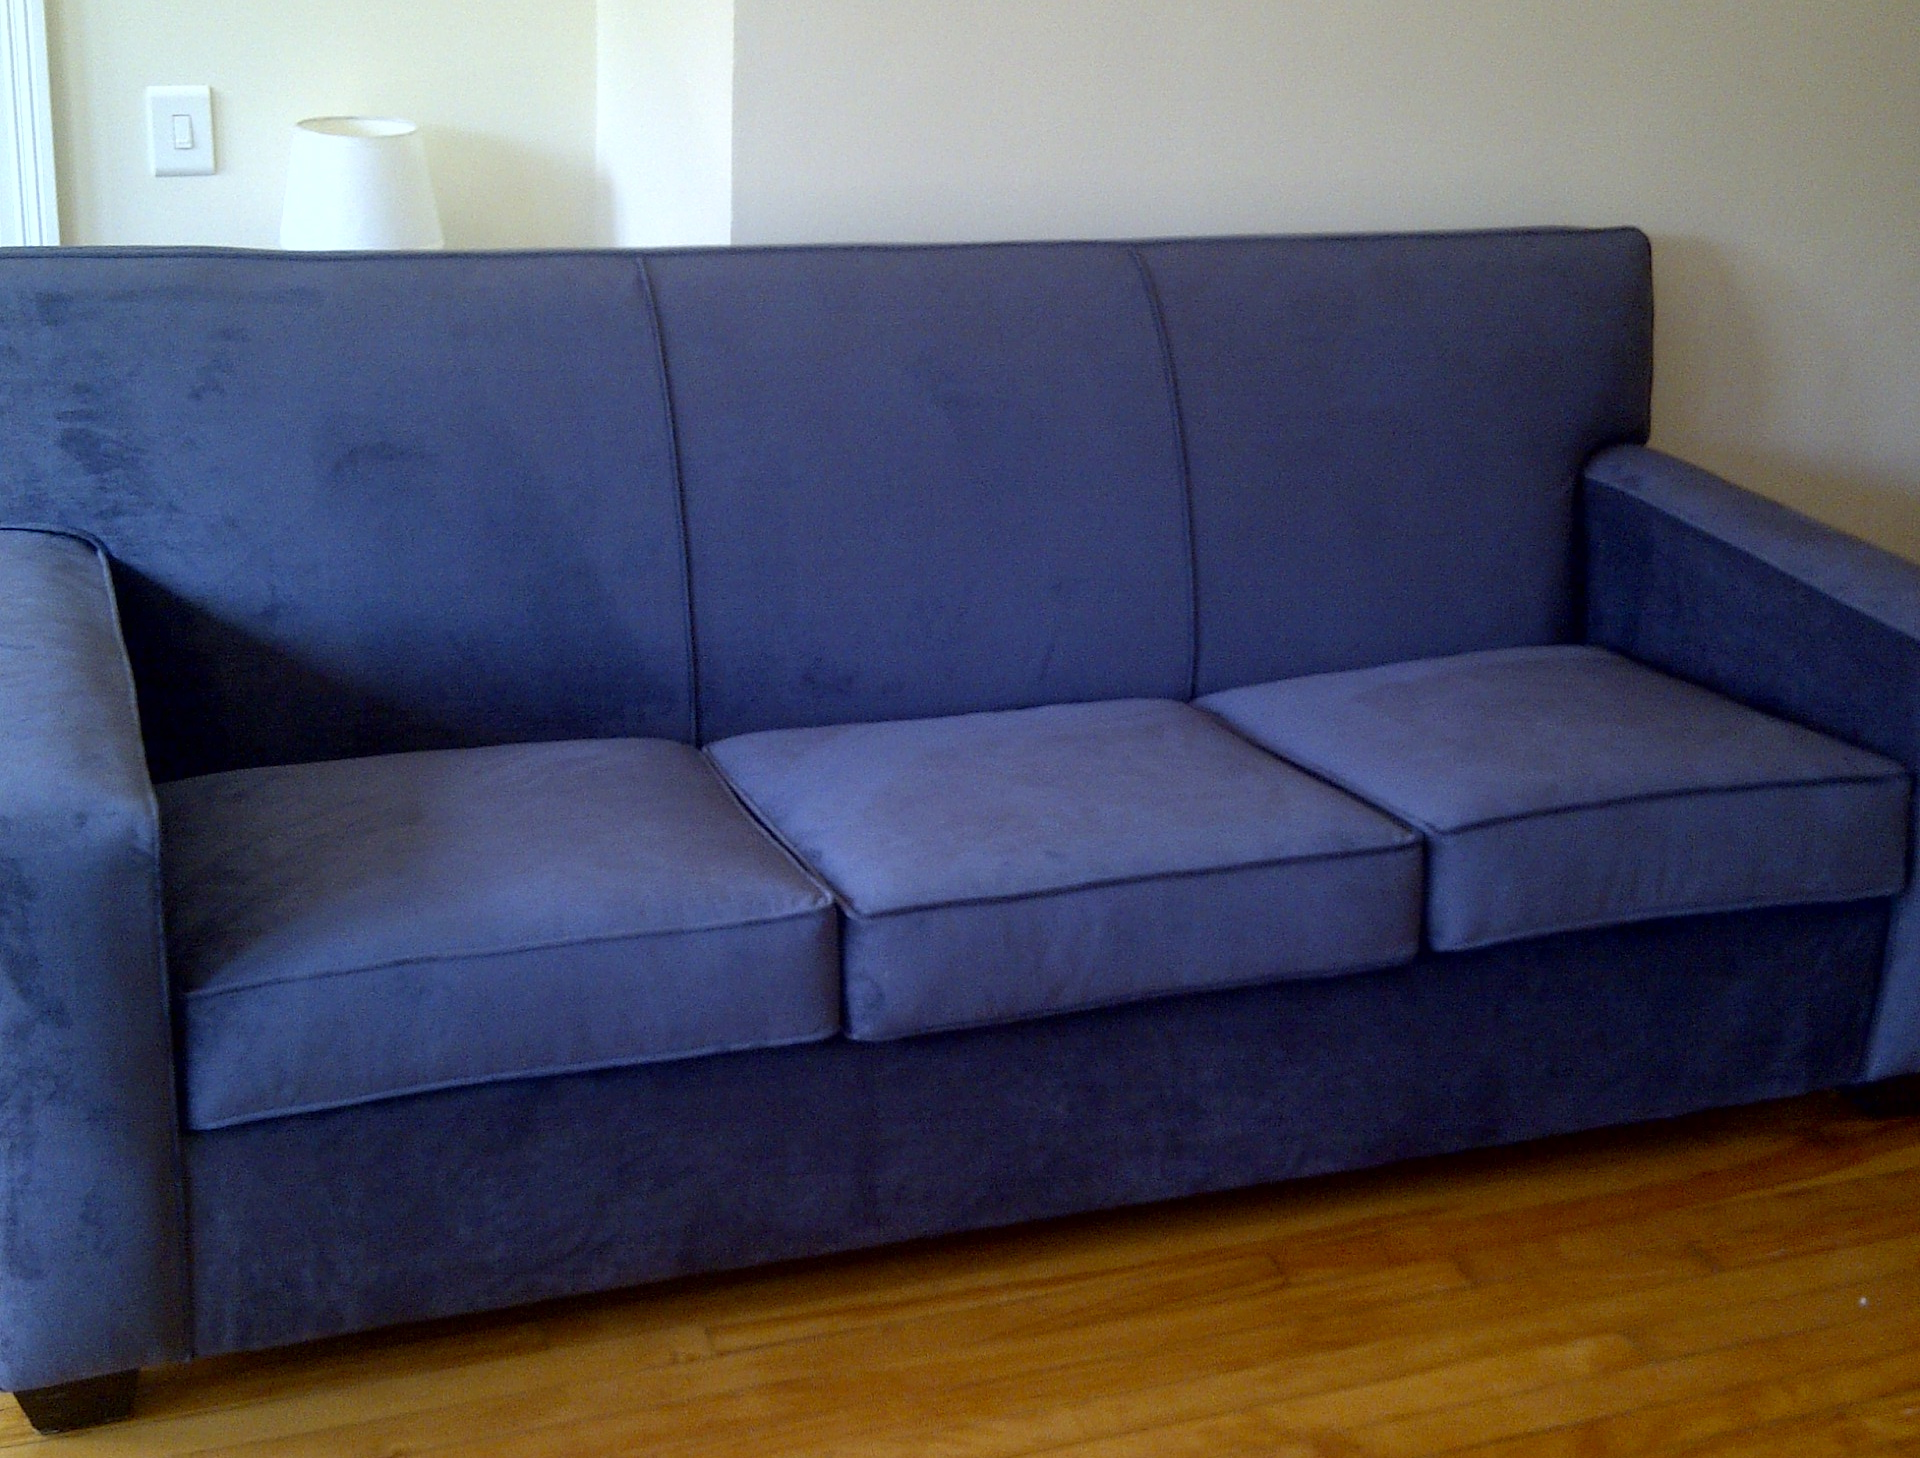 Reupholstering of sleeper couch upholstery cape town for Recover furniture cape town